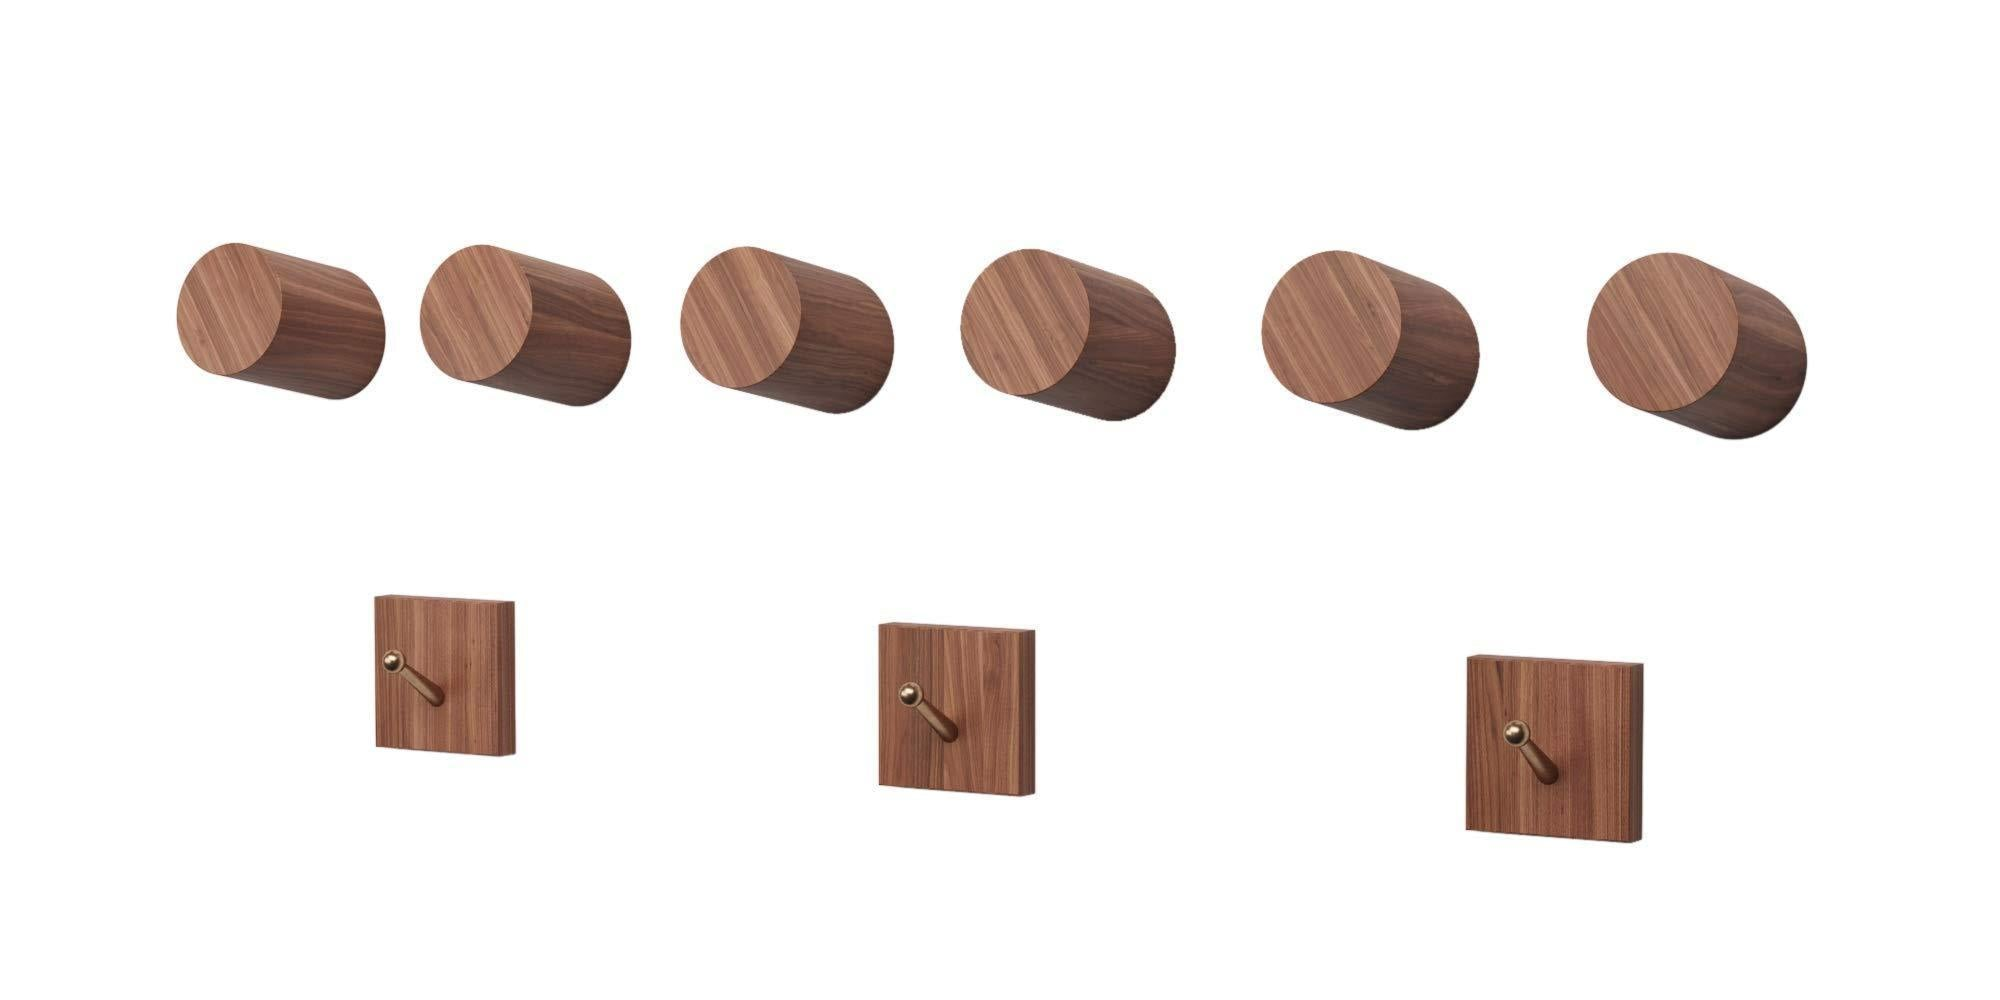 Black Walnut Wooden Wall Mounted Coat Hooks - 6 Pack, Bonus of 3 Key Hooks, Towel or Hat Rack, Keychain Hooks, Hooks for Hanging Hats, Caps, Headphones, Jackets, Purses, a Kitchen & Wall Organizer